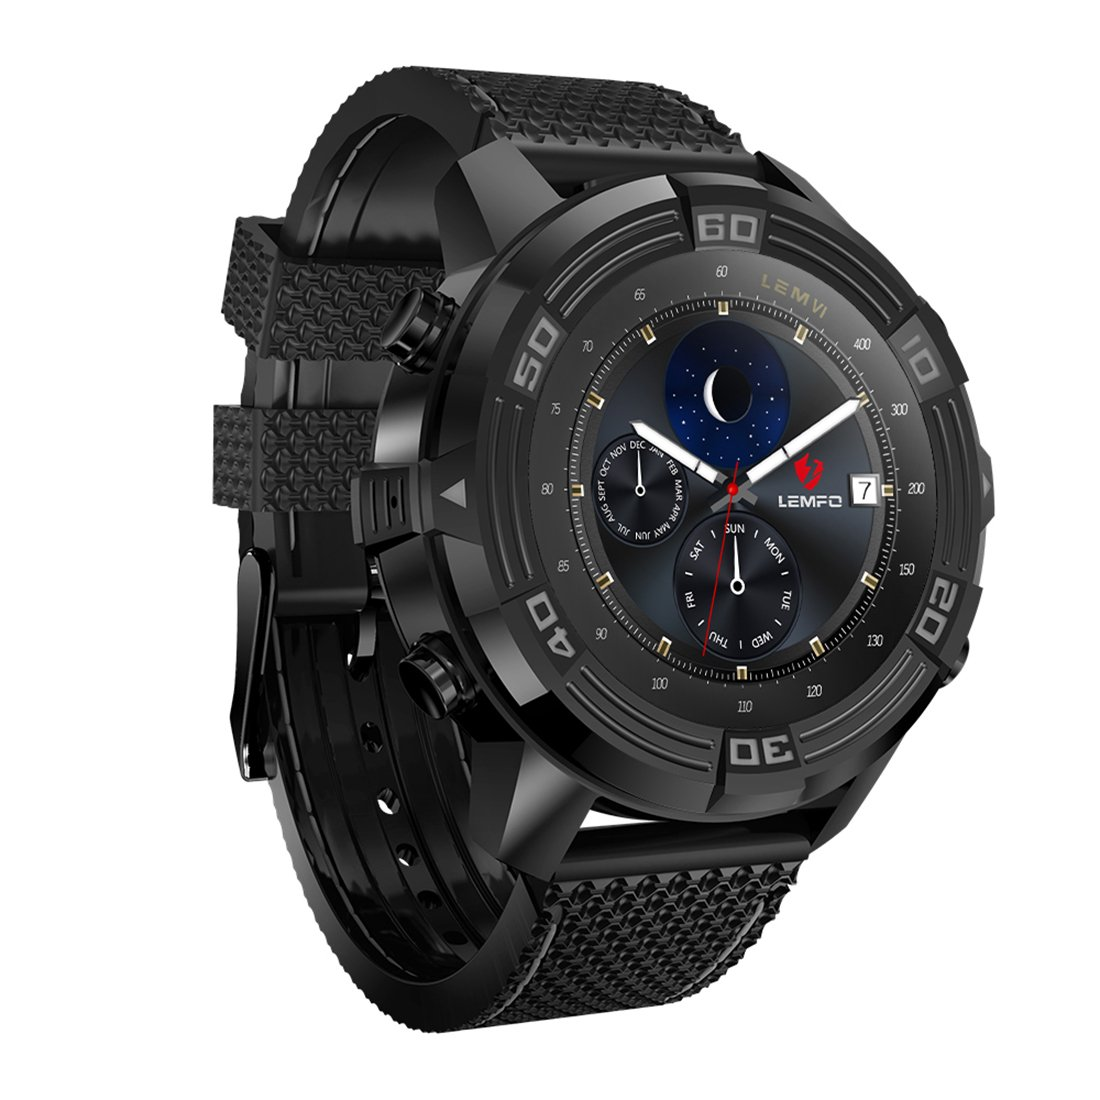 Amazon.com: LEM6 Smart Watch Android 5.1 1GB + 16GB Support ...